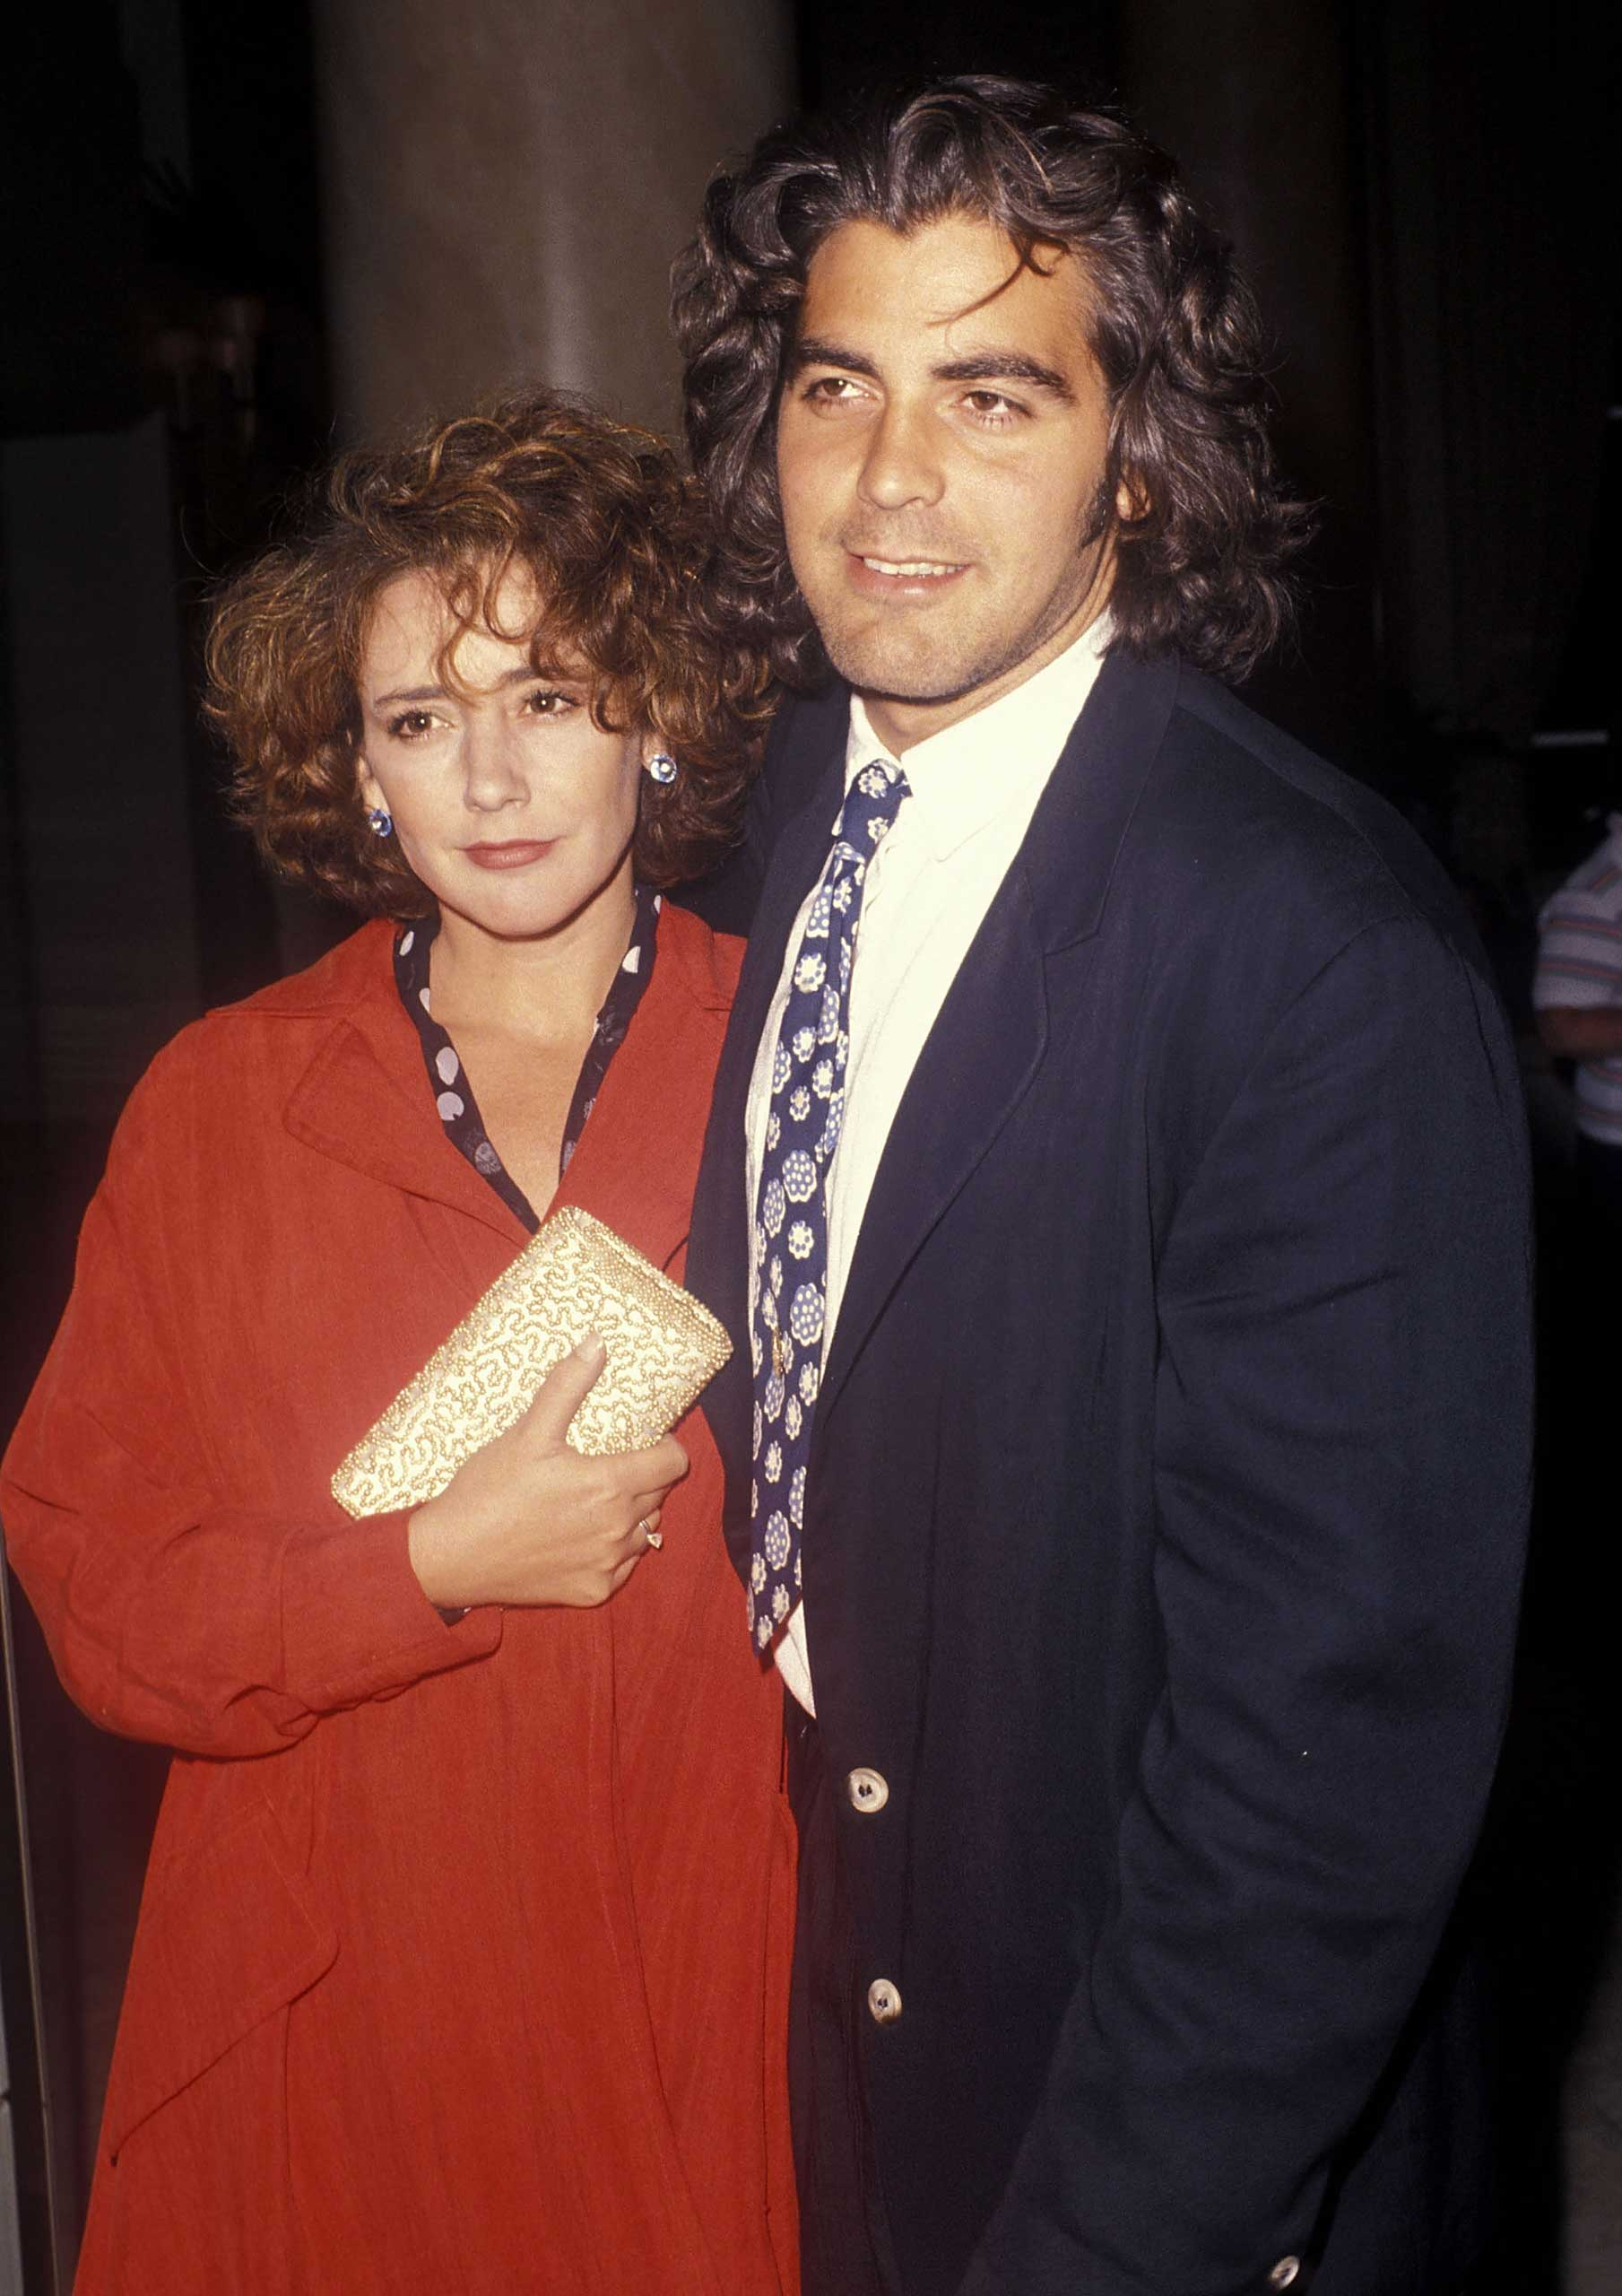 Clooney married Talia Balsam in 1989. They divorced three years later.